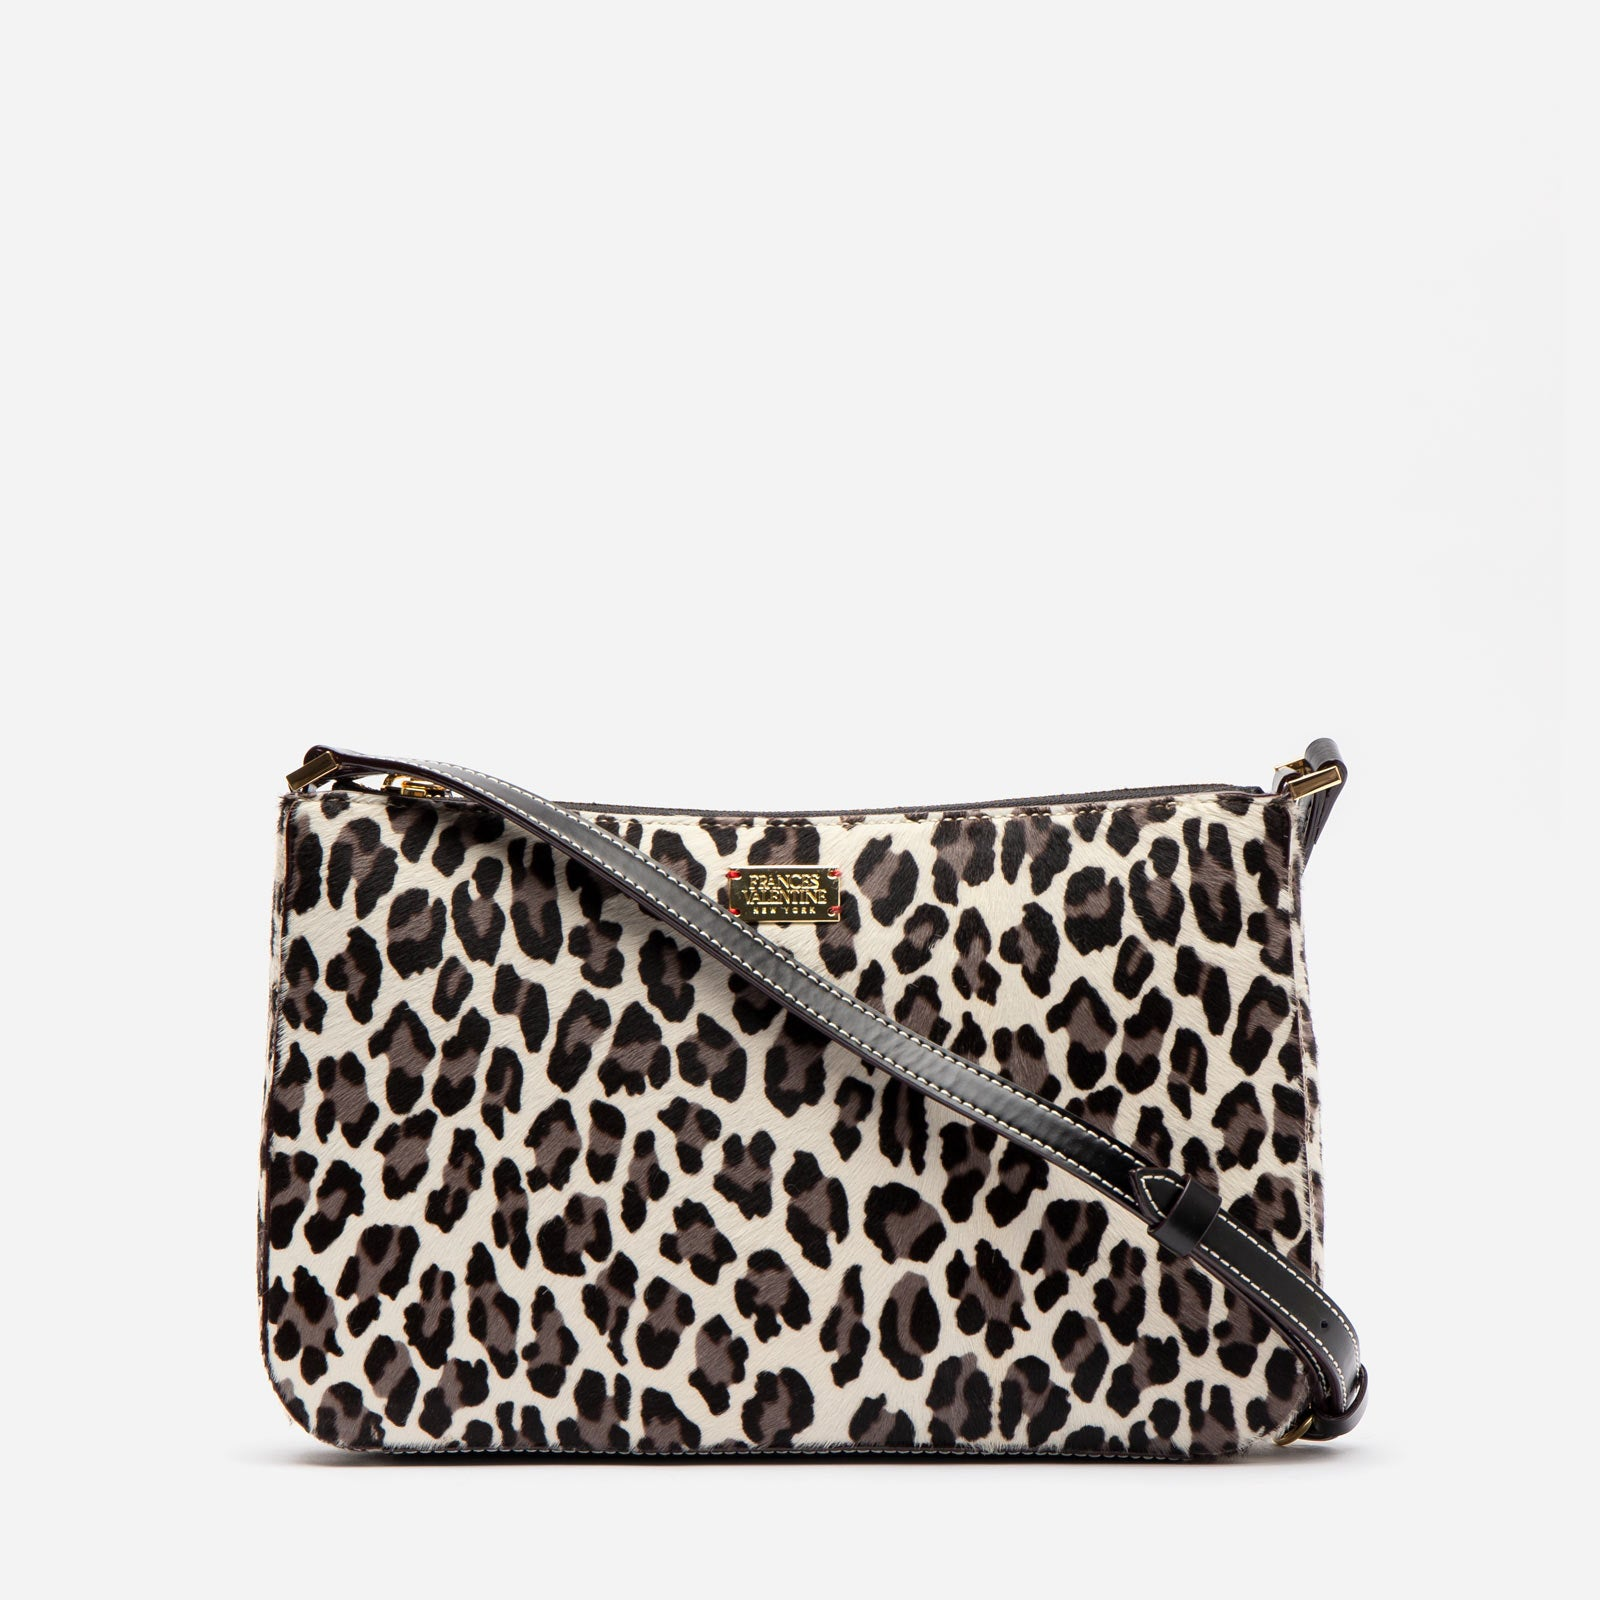 Poppy Crossbody Printed Haircalf Snow Leopard - Frances Valentine